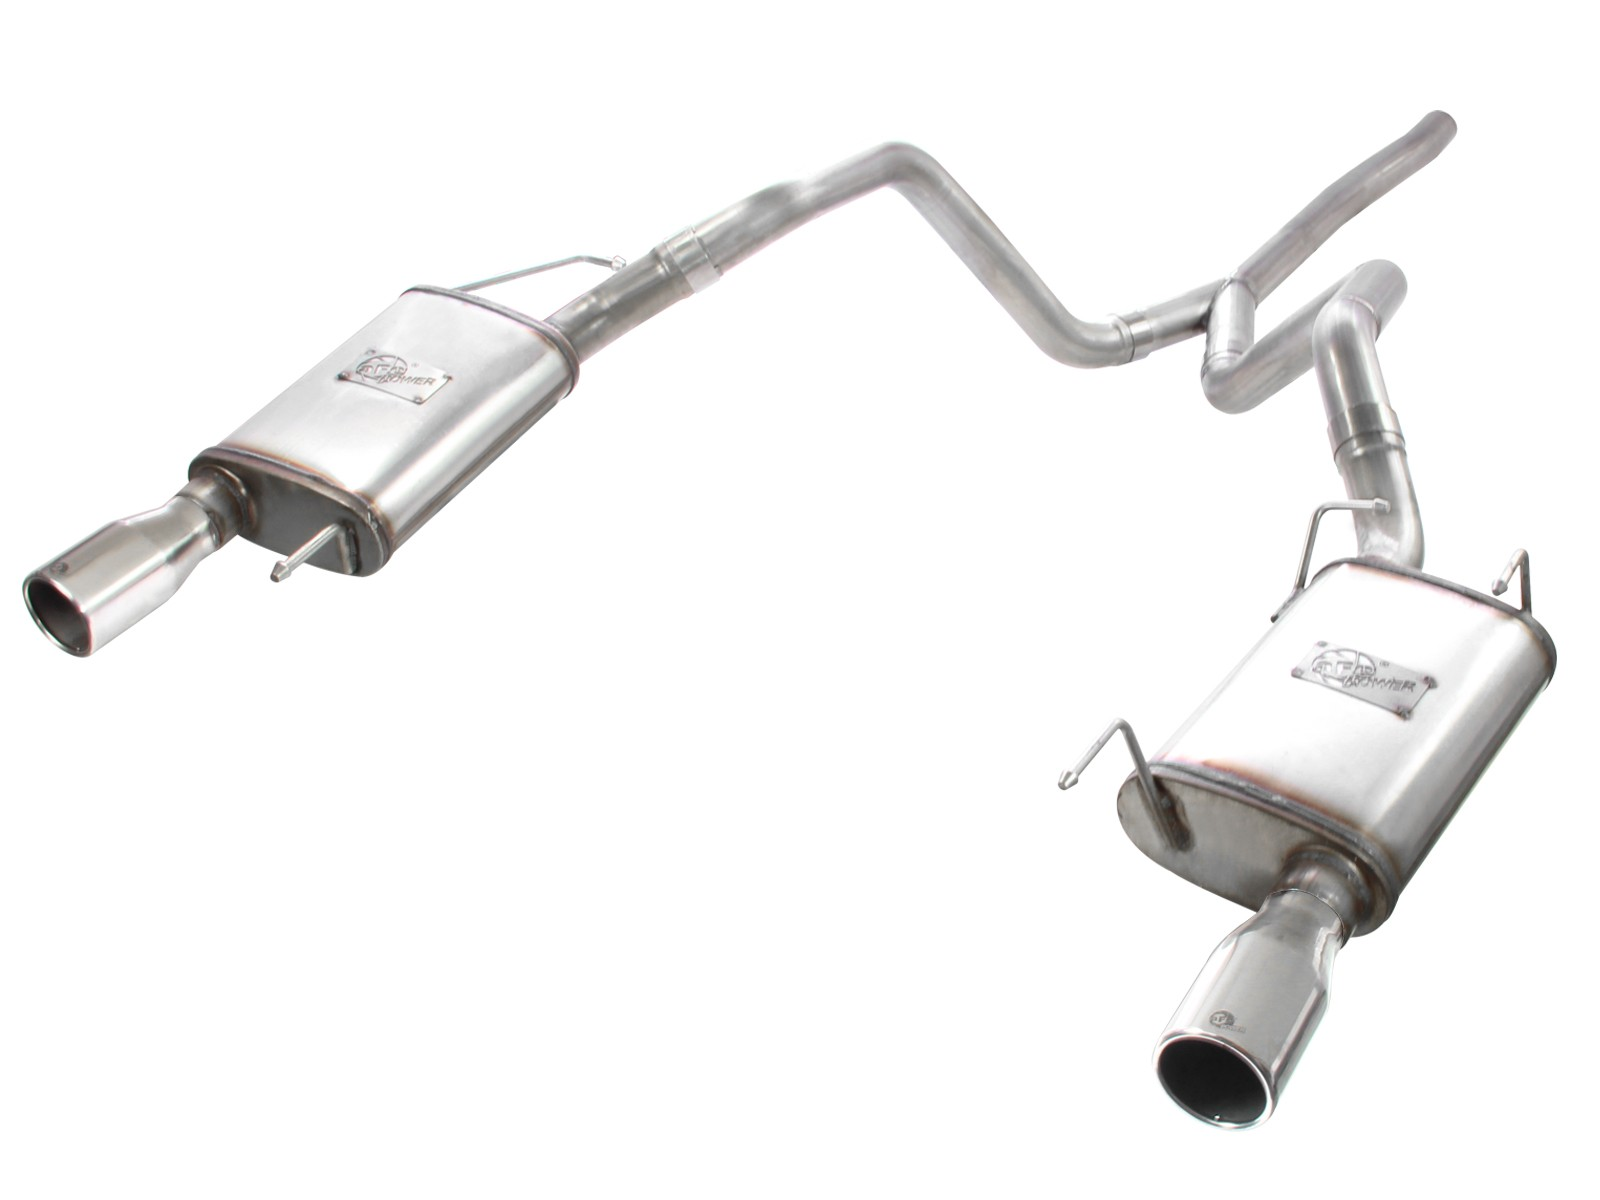 "aFe POWER 49-43047 MACH Force-Xp 2-1/2"" 409 Stainless Steel Cat-Back Exhaust System"